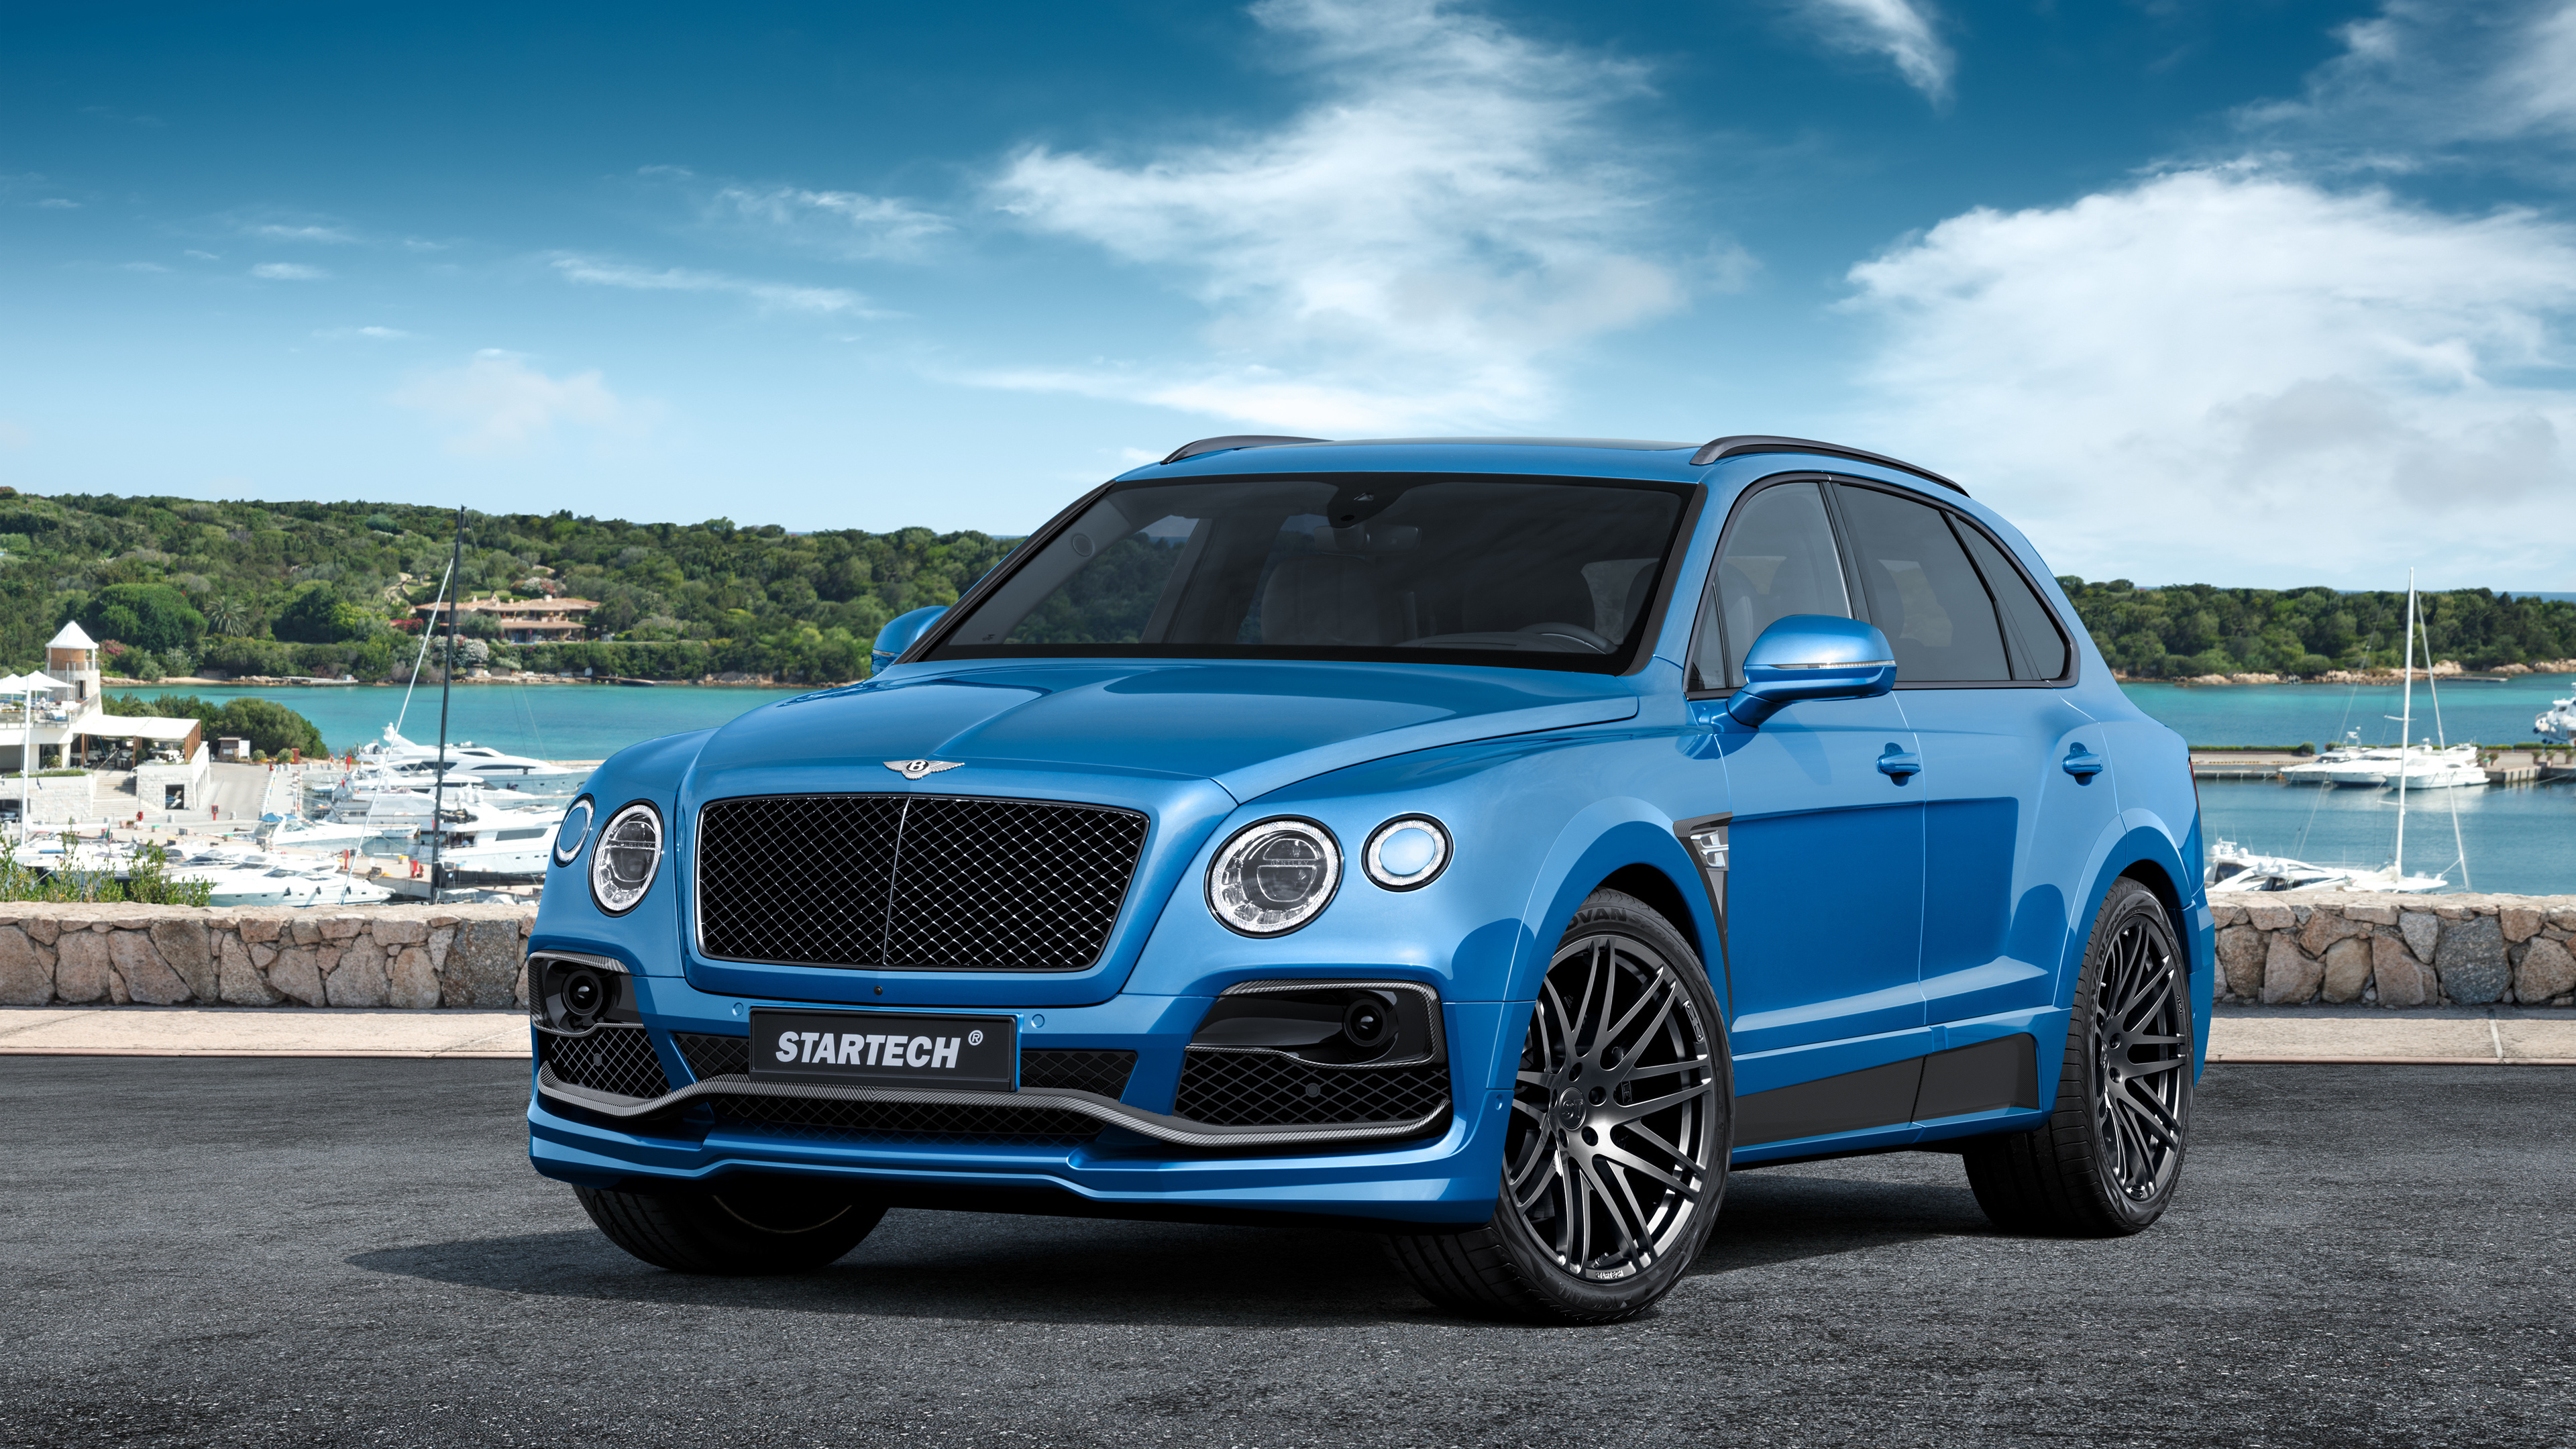 Bentley Bentayga By Startech Wallpaper  Hd Car Wallpapers